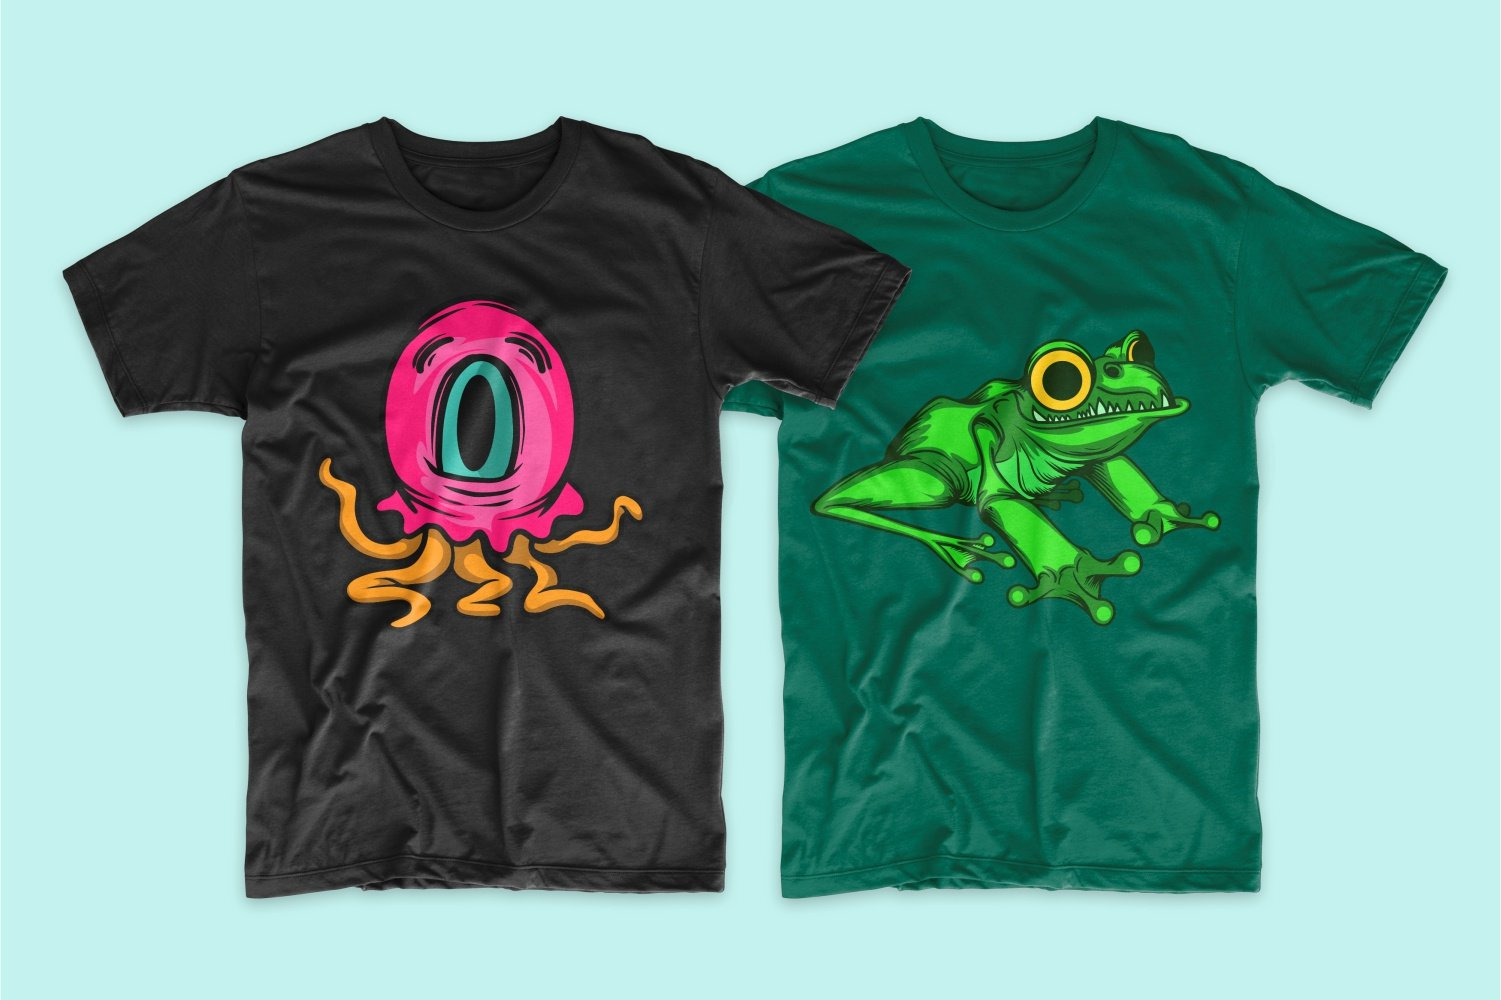 Black T-shirt with a one-eyed pink octopus and green with a frog.